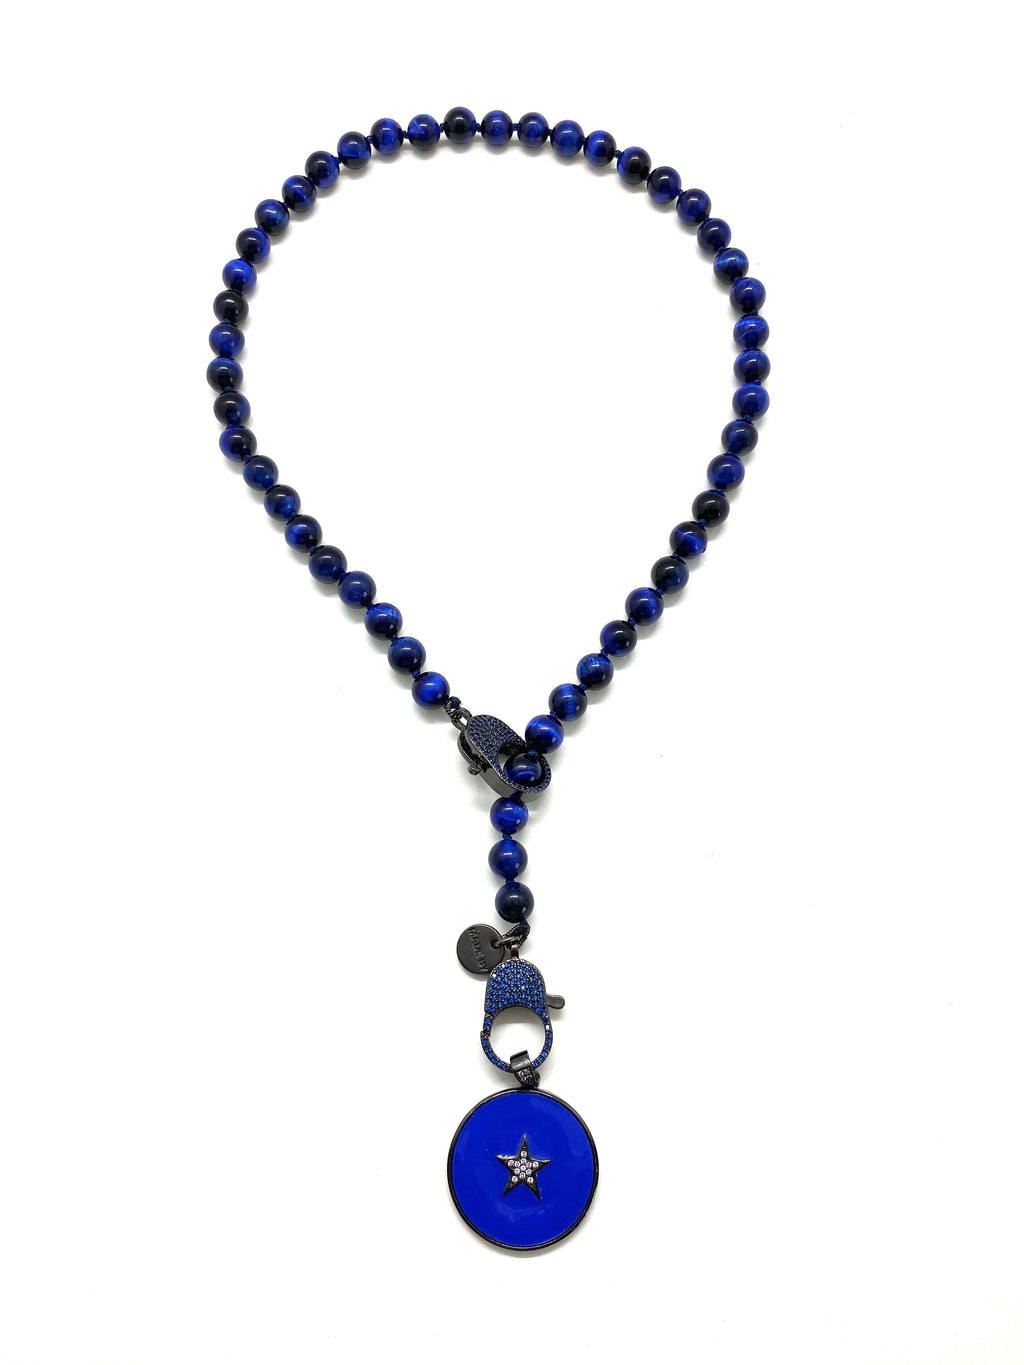 Lapis tiger stone Gaia necklace, round navy star pendant, deep blue zirconia clips